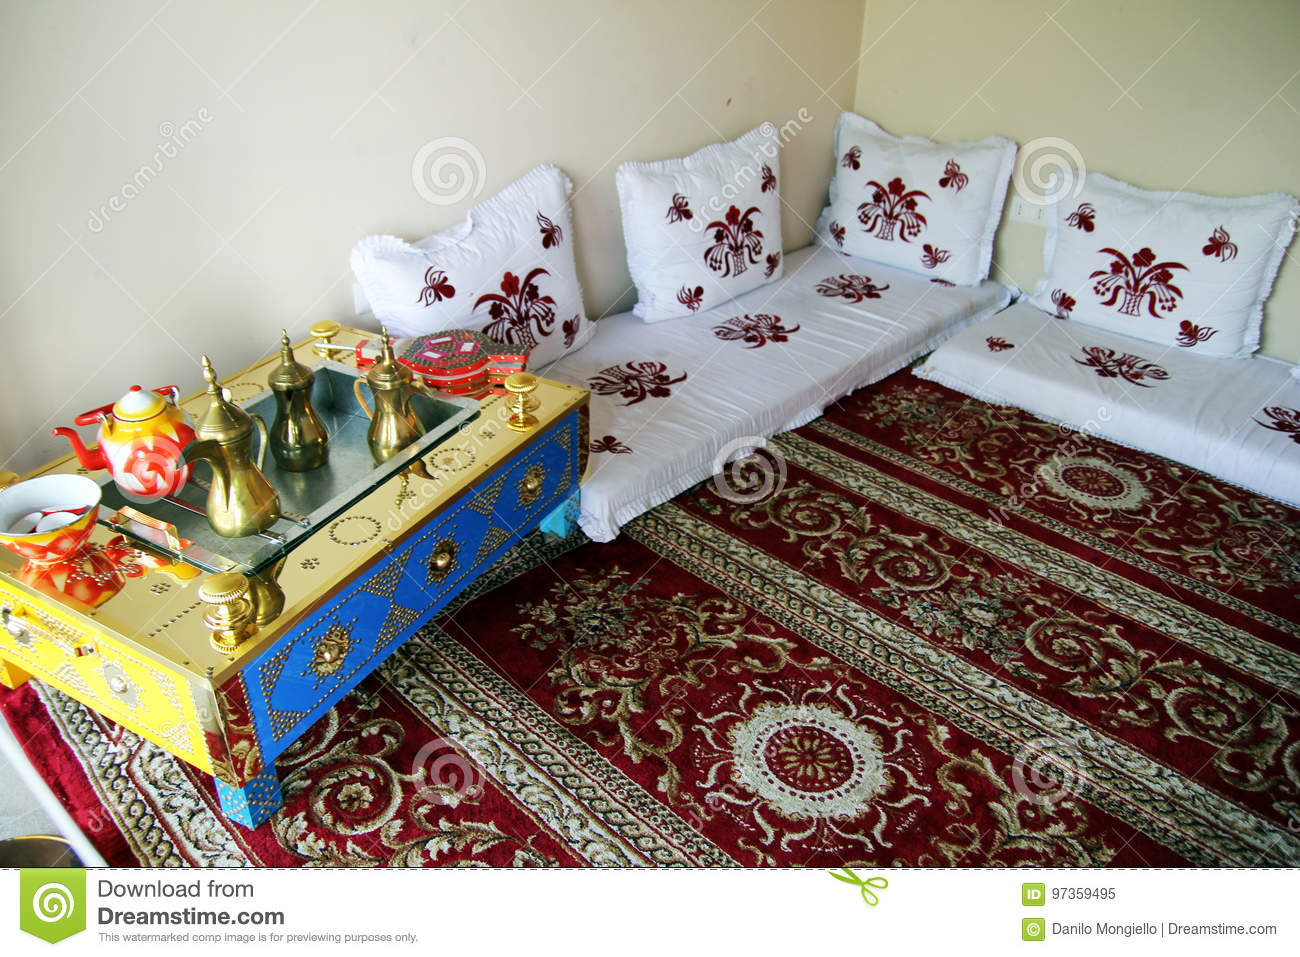 arabic living room furniture design your app qatar stock image of jordan 97359495 a traditional at doha in